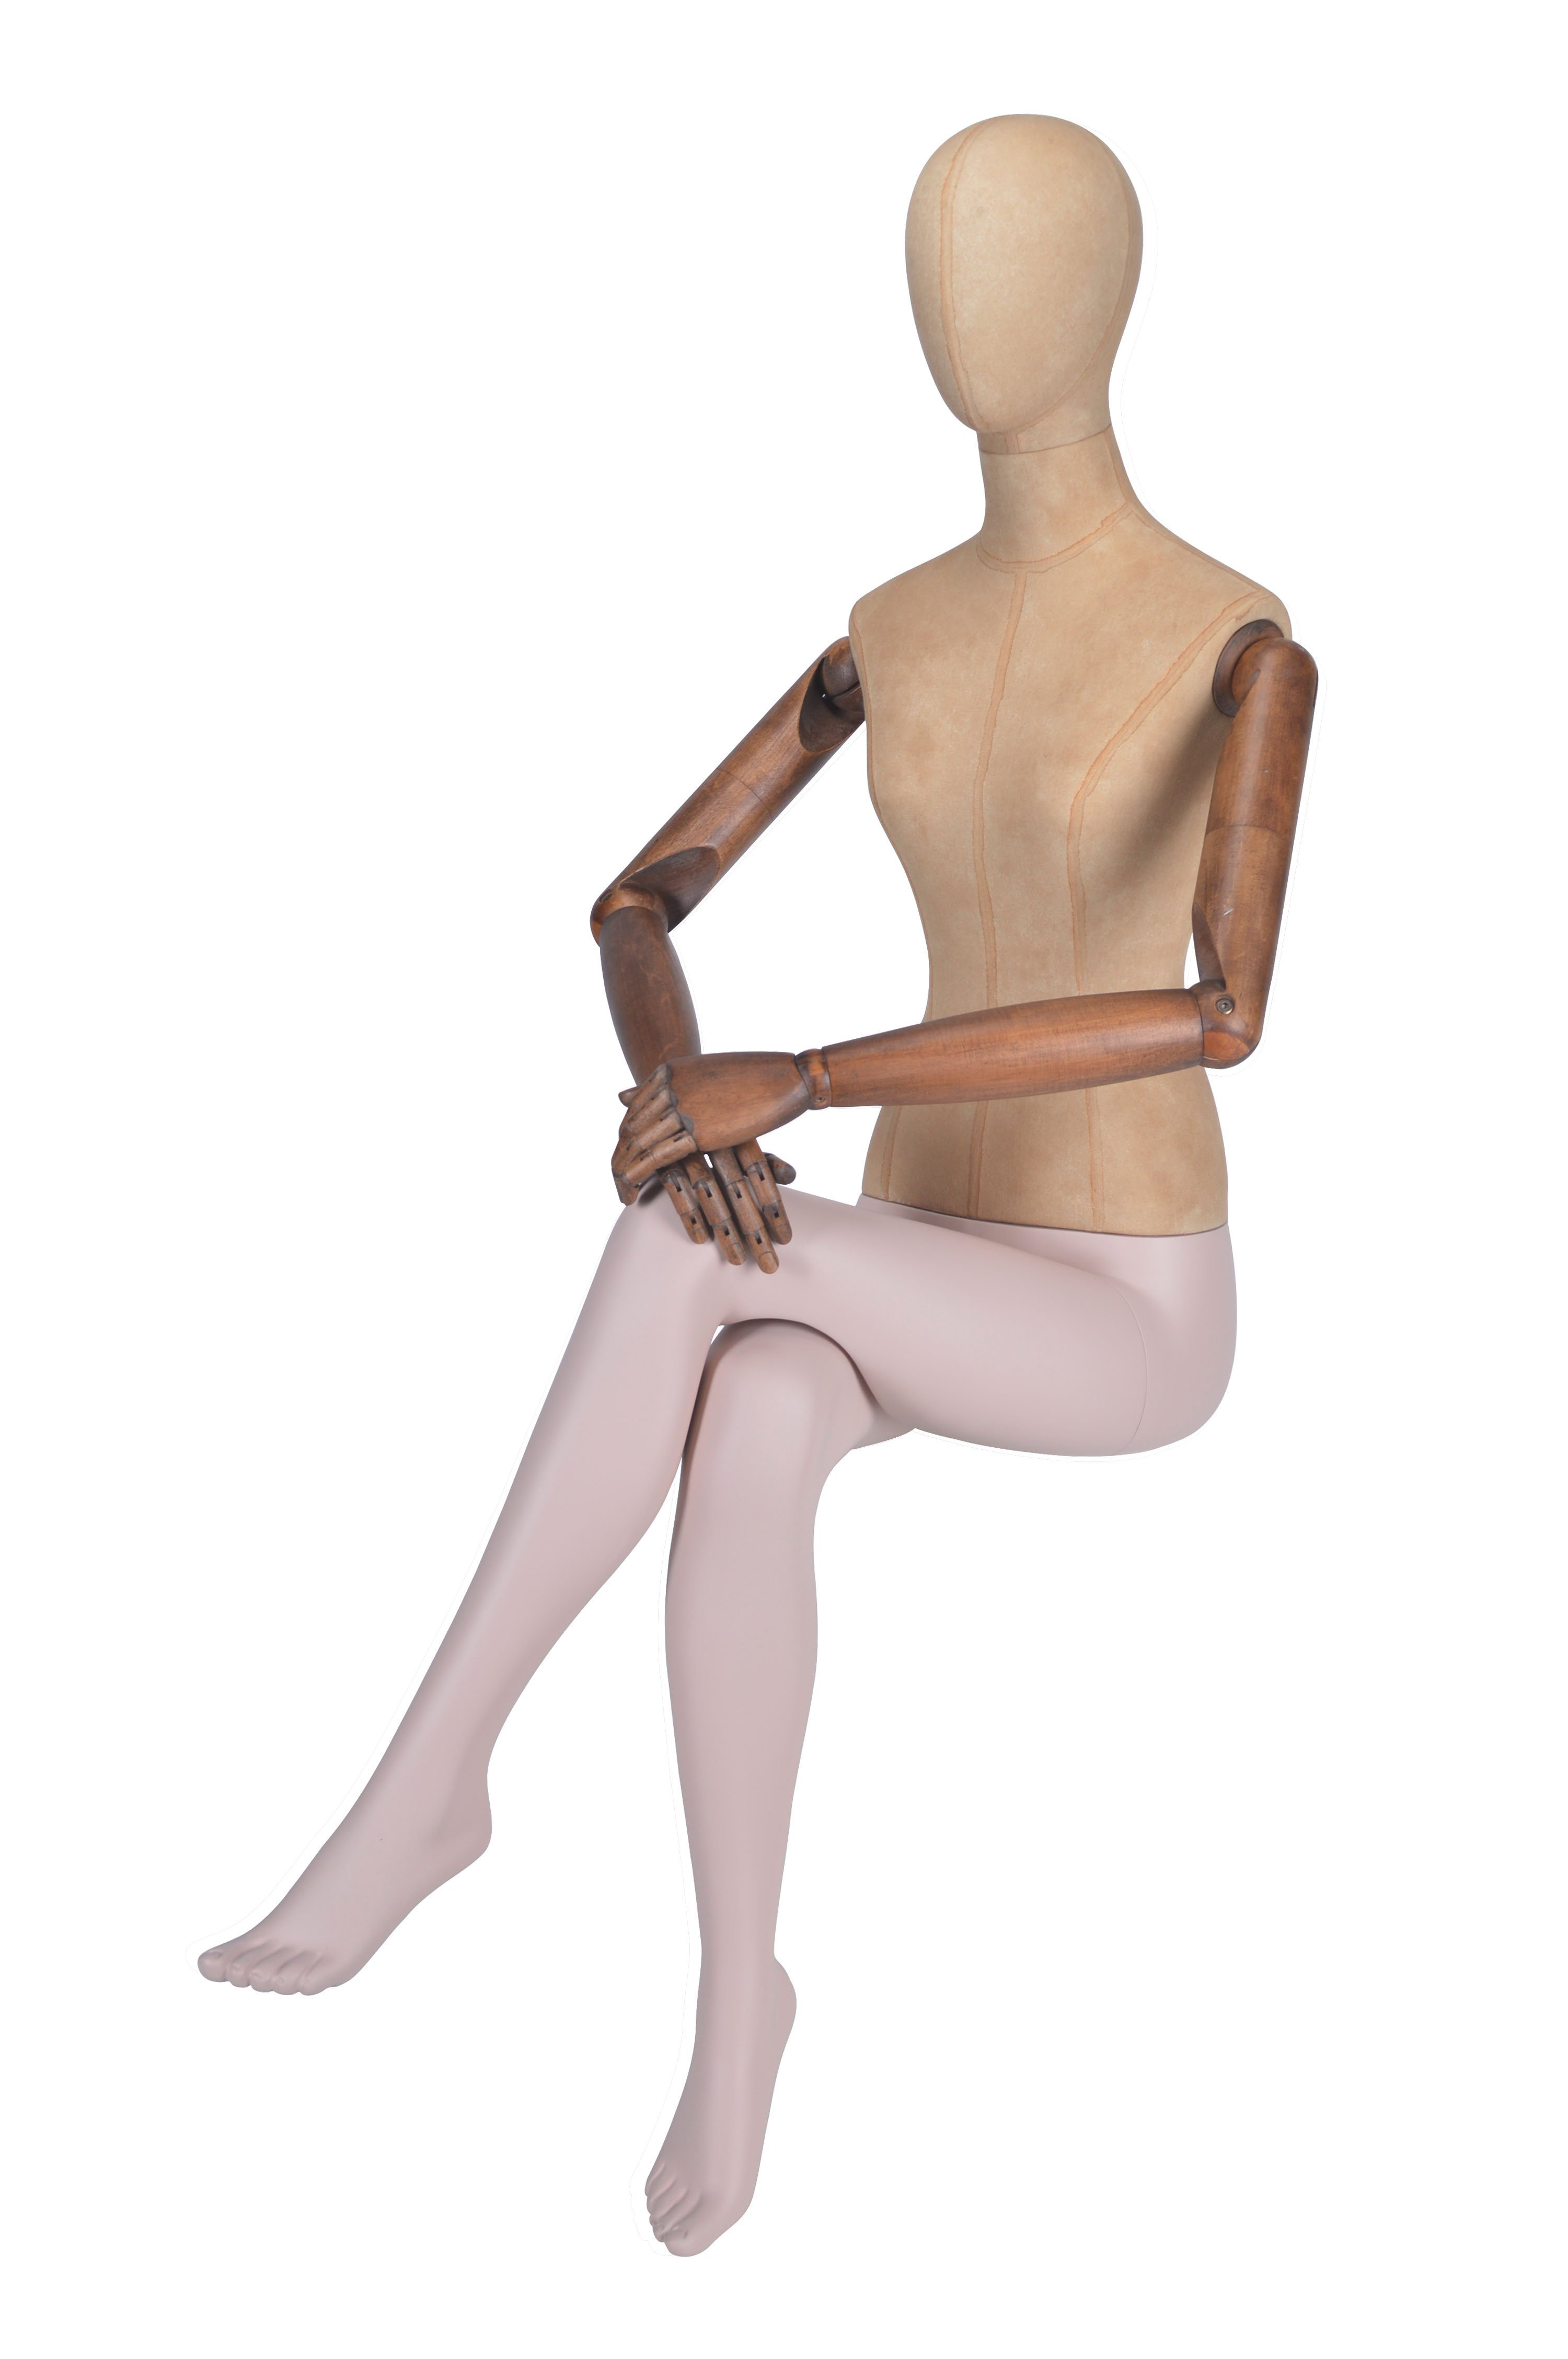 HB1002237 - Sitting Female Mannequin - Crossed legged and Moveable Arms